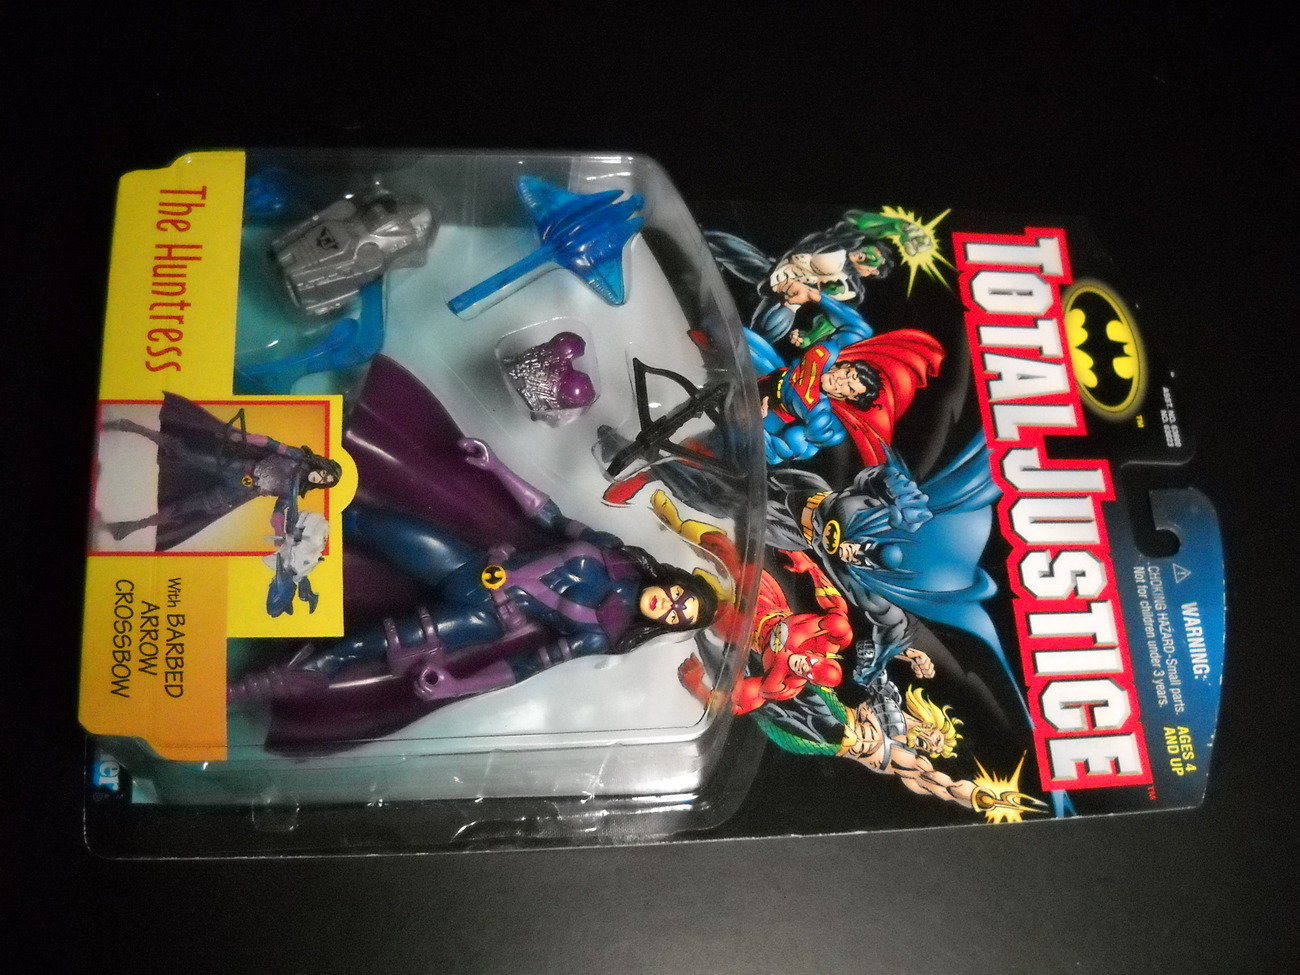 Toy justice league kenner hasbro 1997 total justice huntress moc 02